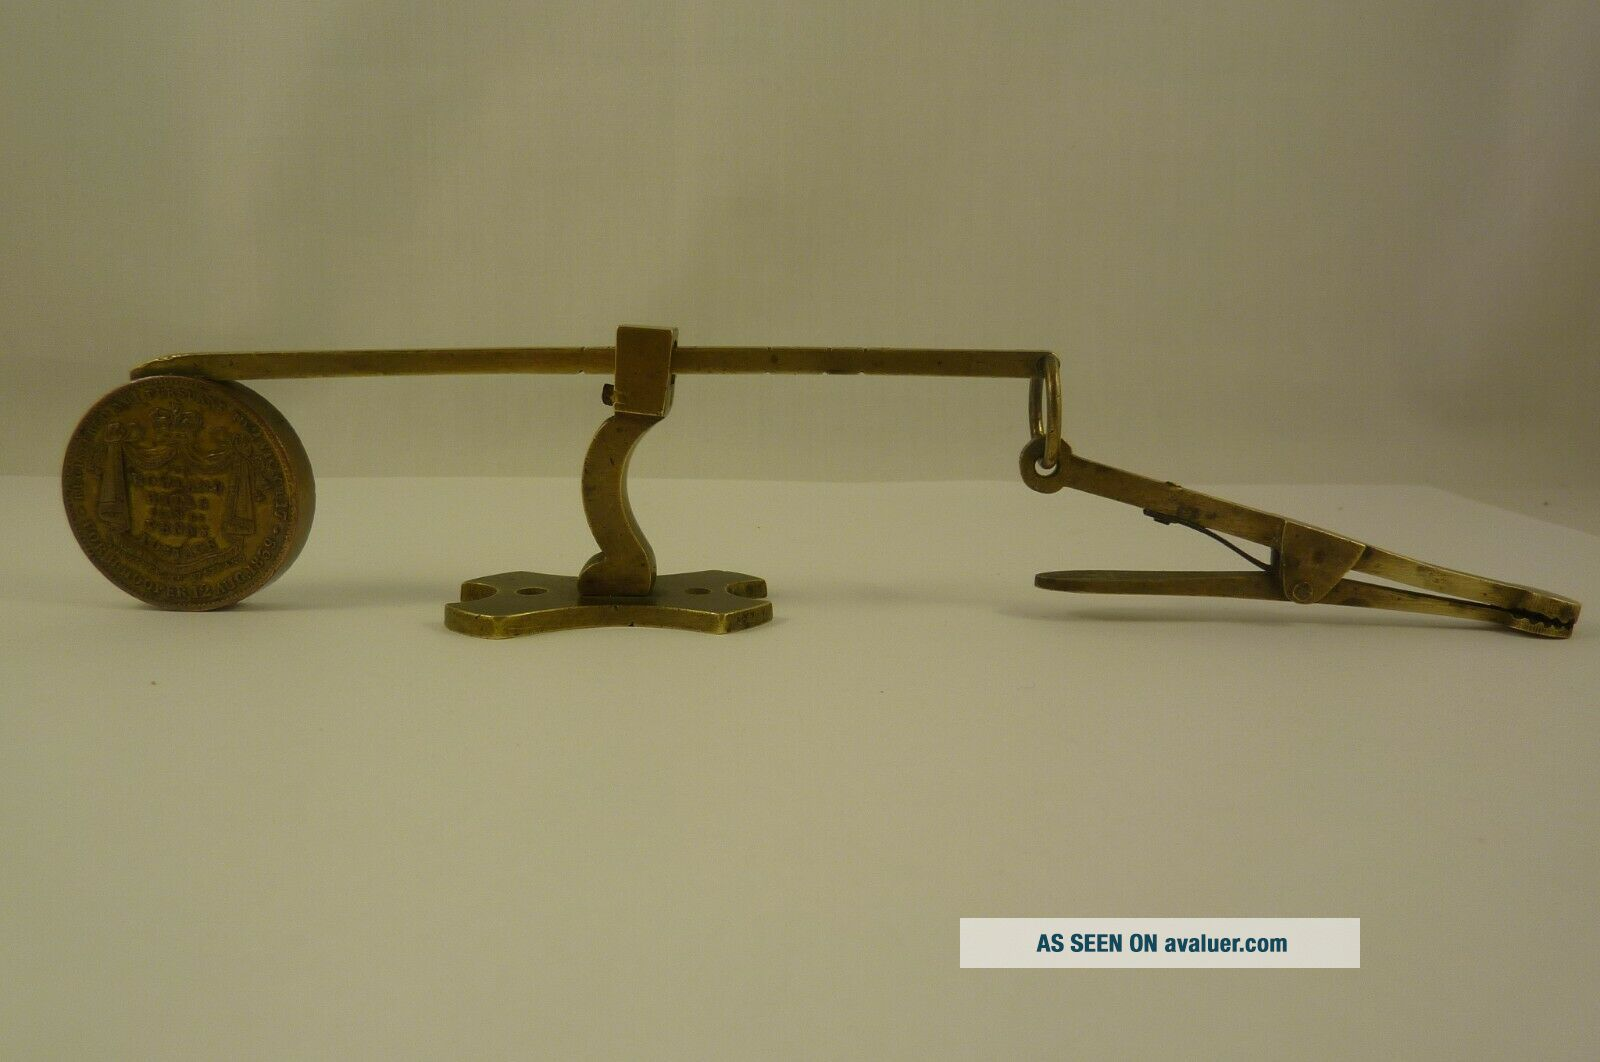 Collectable,  rare Antique Letter Scale for Rowland Hills Penny Postage 1839